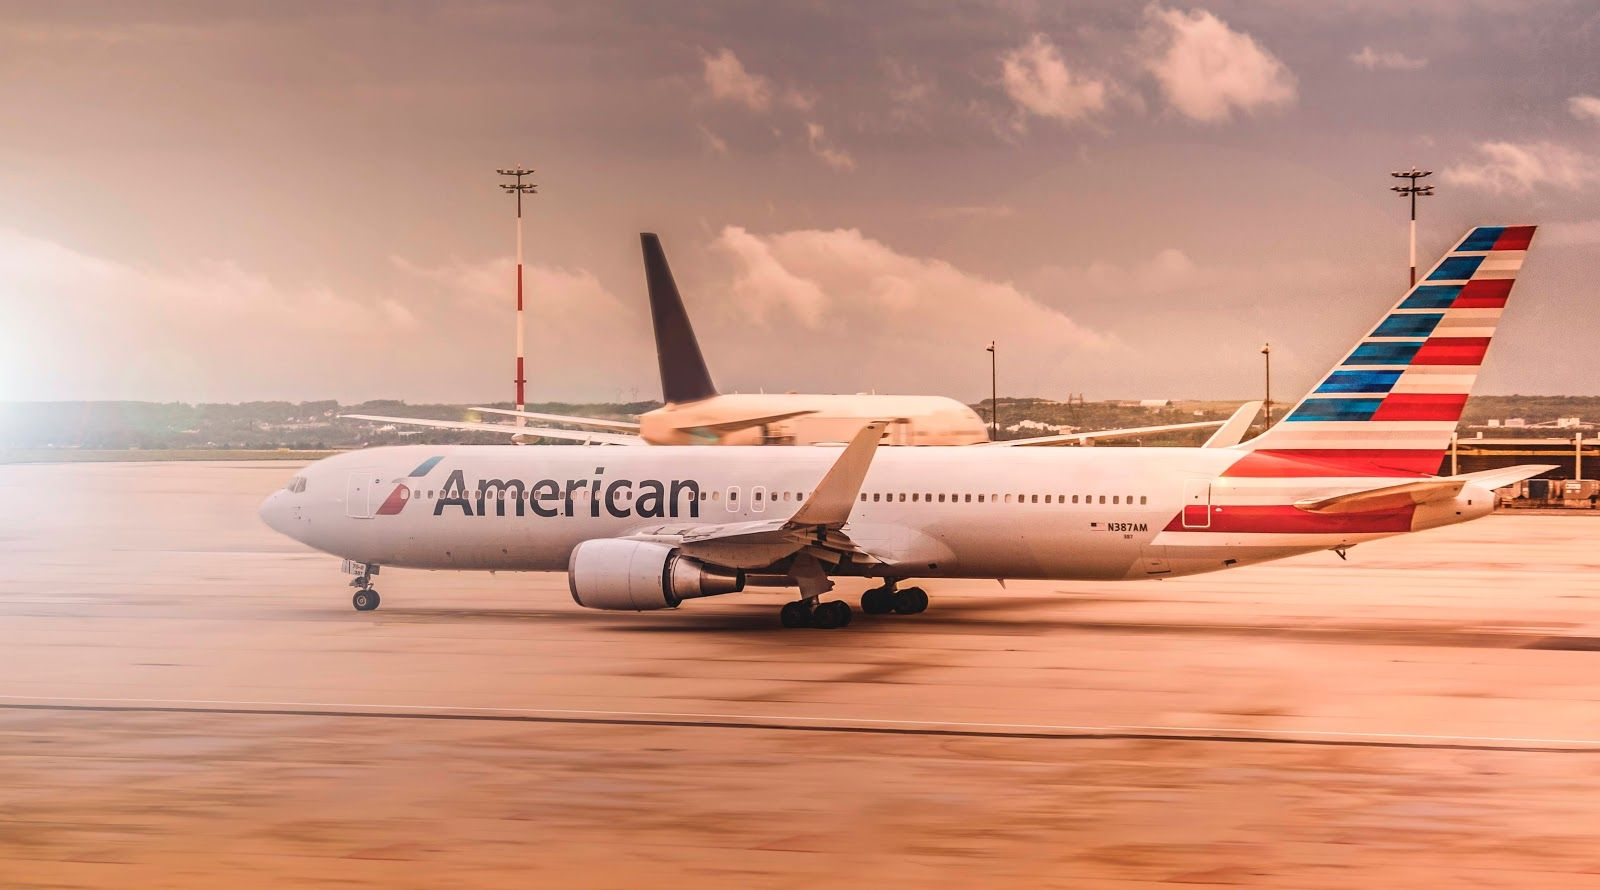 Image of a plane with an American Airlines logo sitting on a runway.